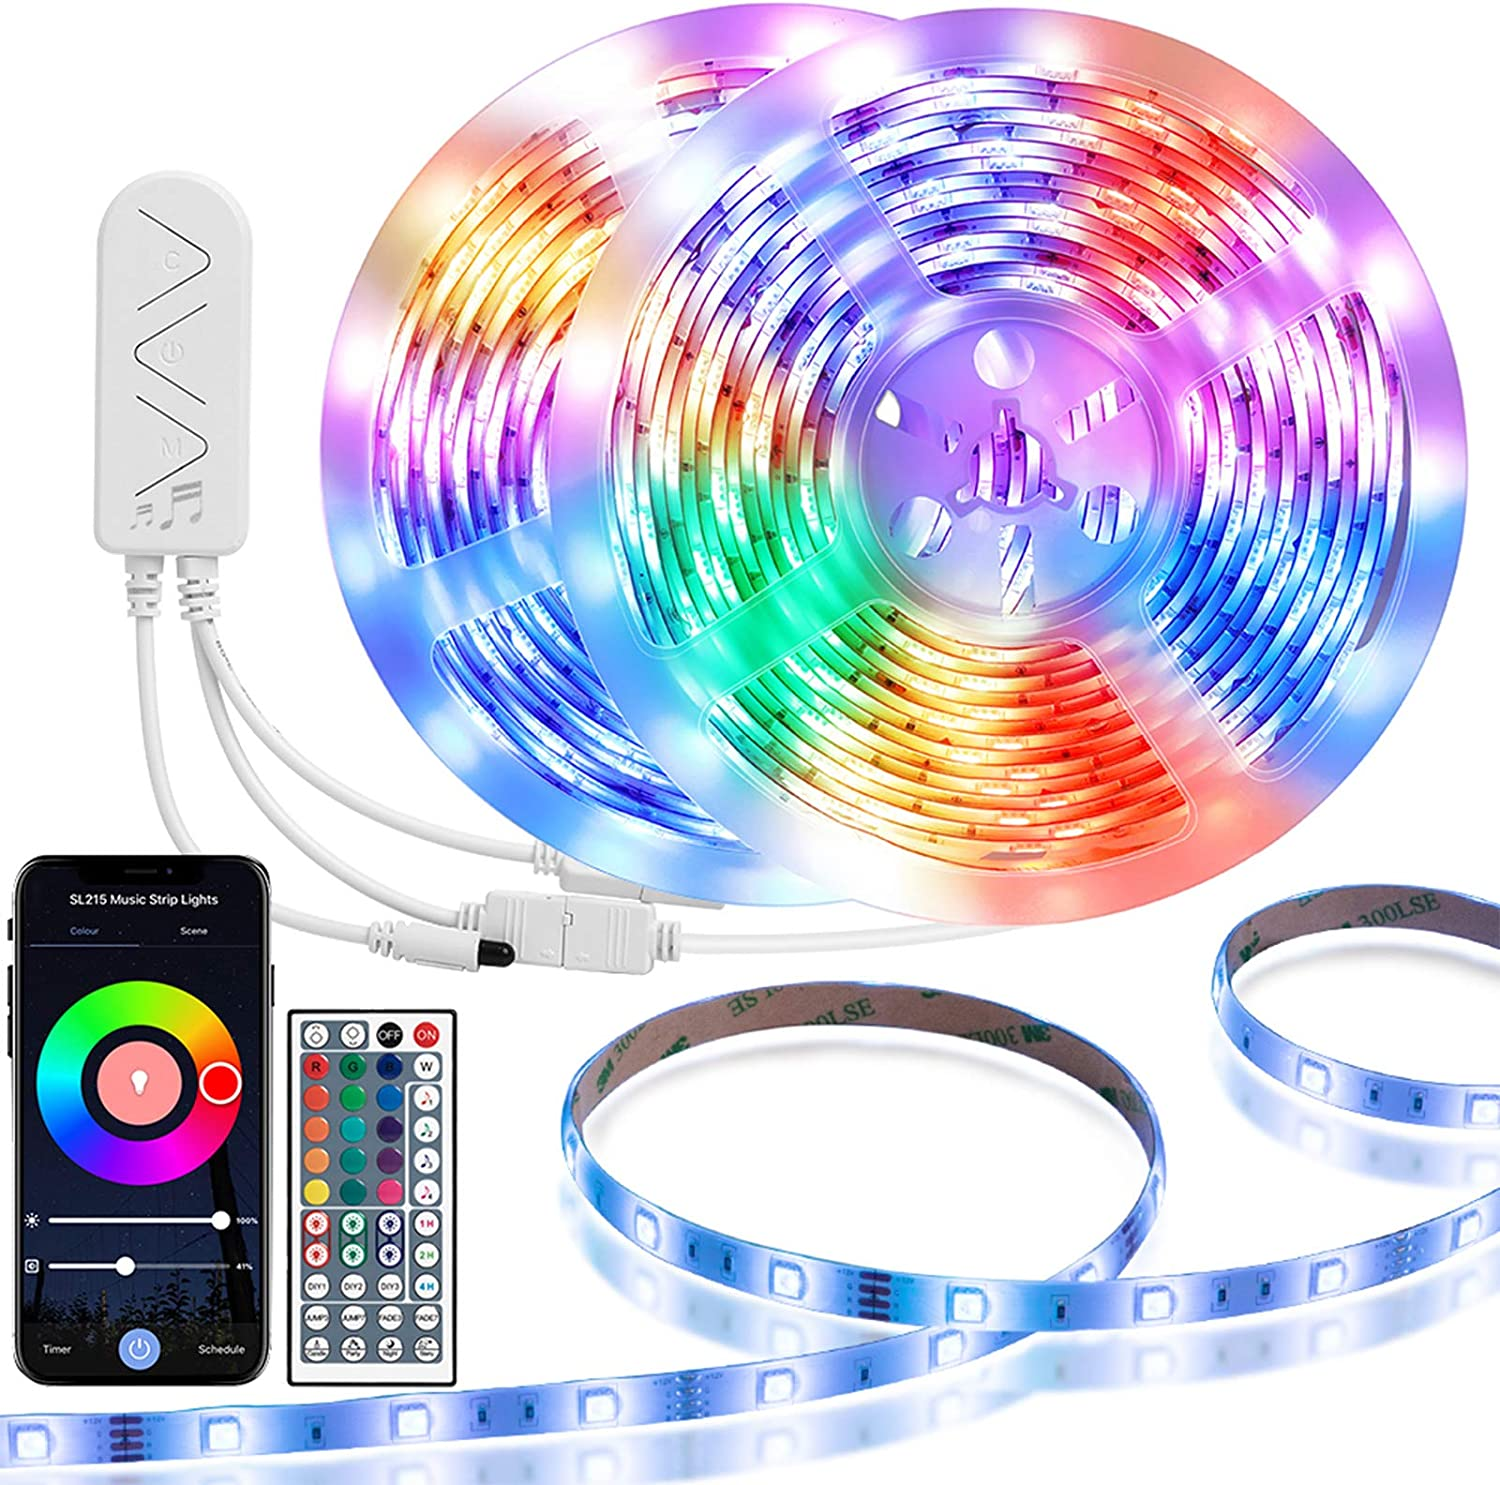 TaoTronics LED Strip Lights Work with Alexa,32.8ft RGB Smart WiFi Waterproof LED Rope Lights, Music Strip Lights with Timer and Remote Controller, DIY LED Lights for Home Party